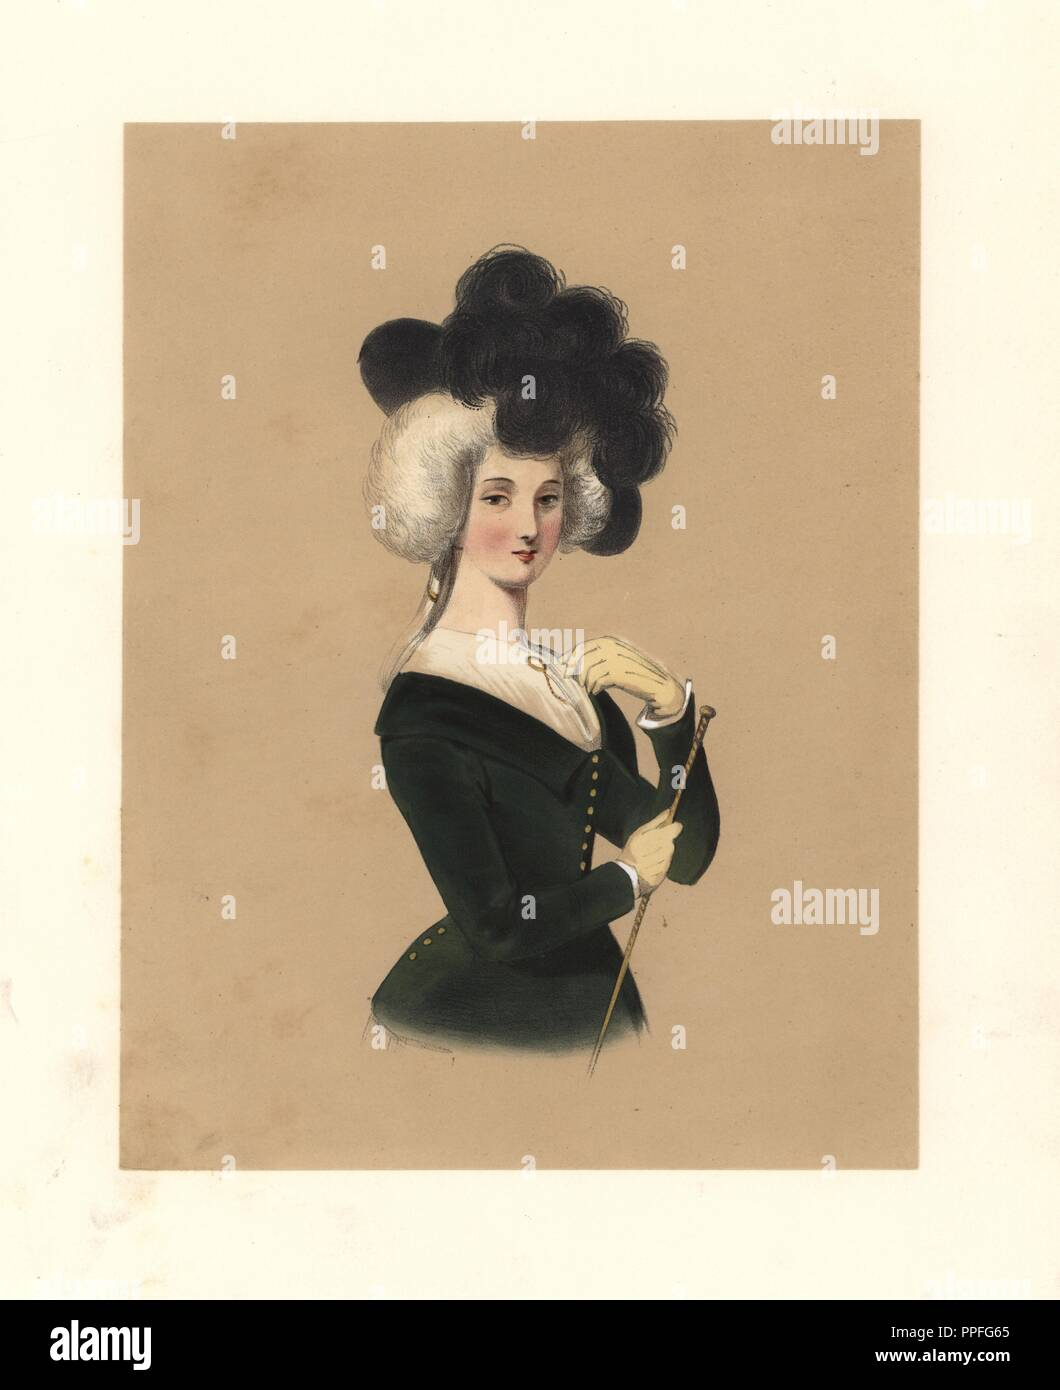 Dress Of The Reign Of George Iii 1760 1820 Woman In Black Hat With